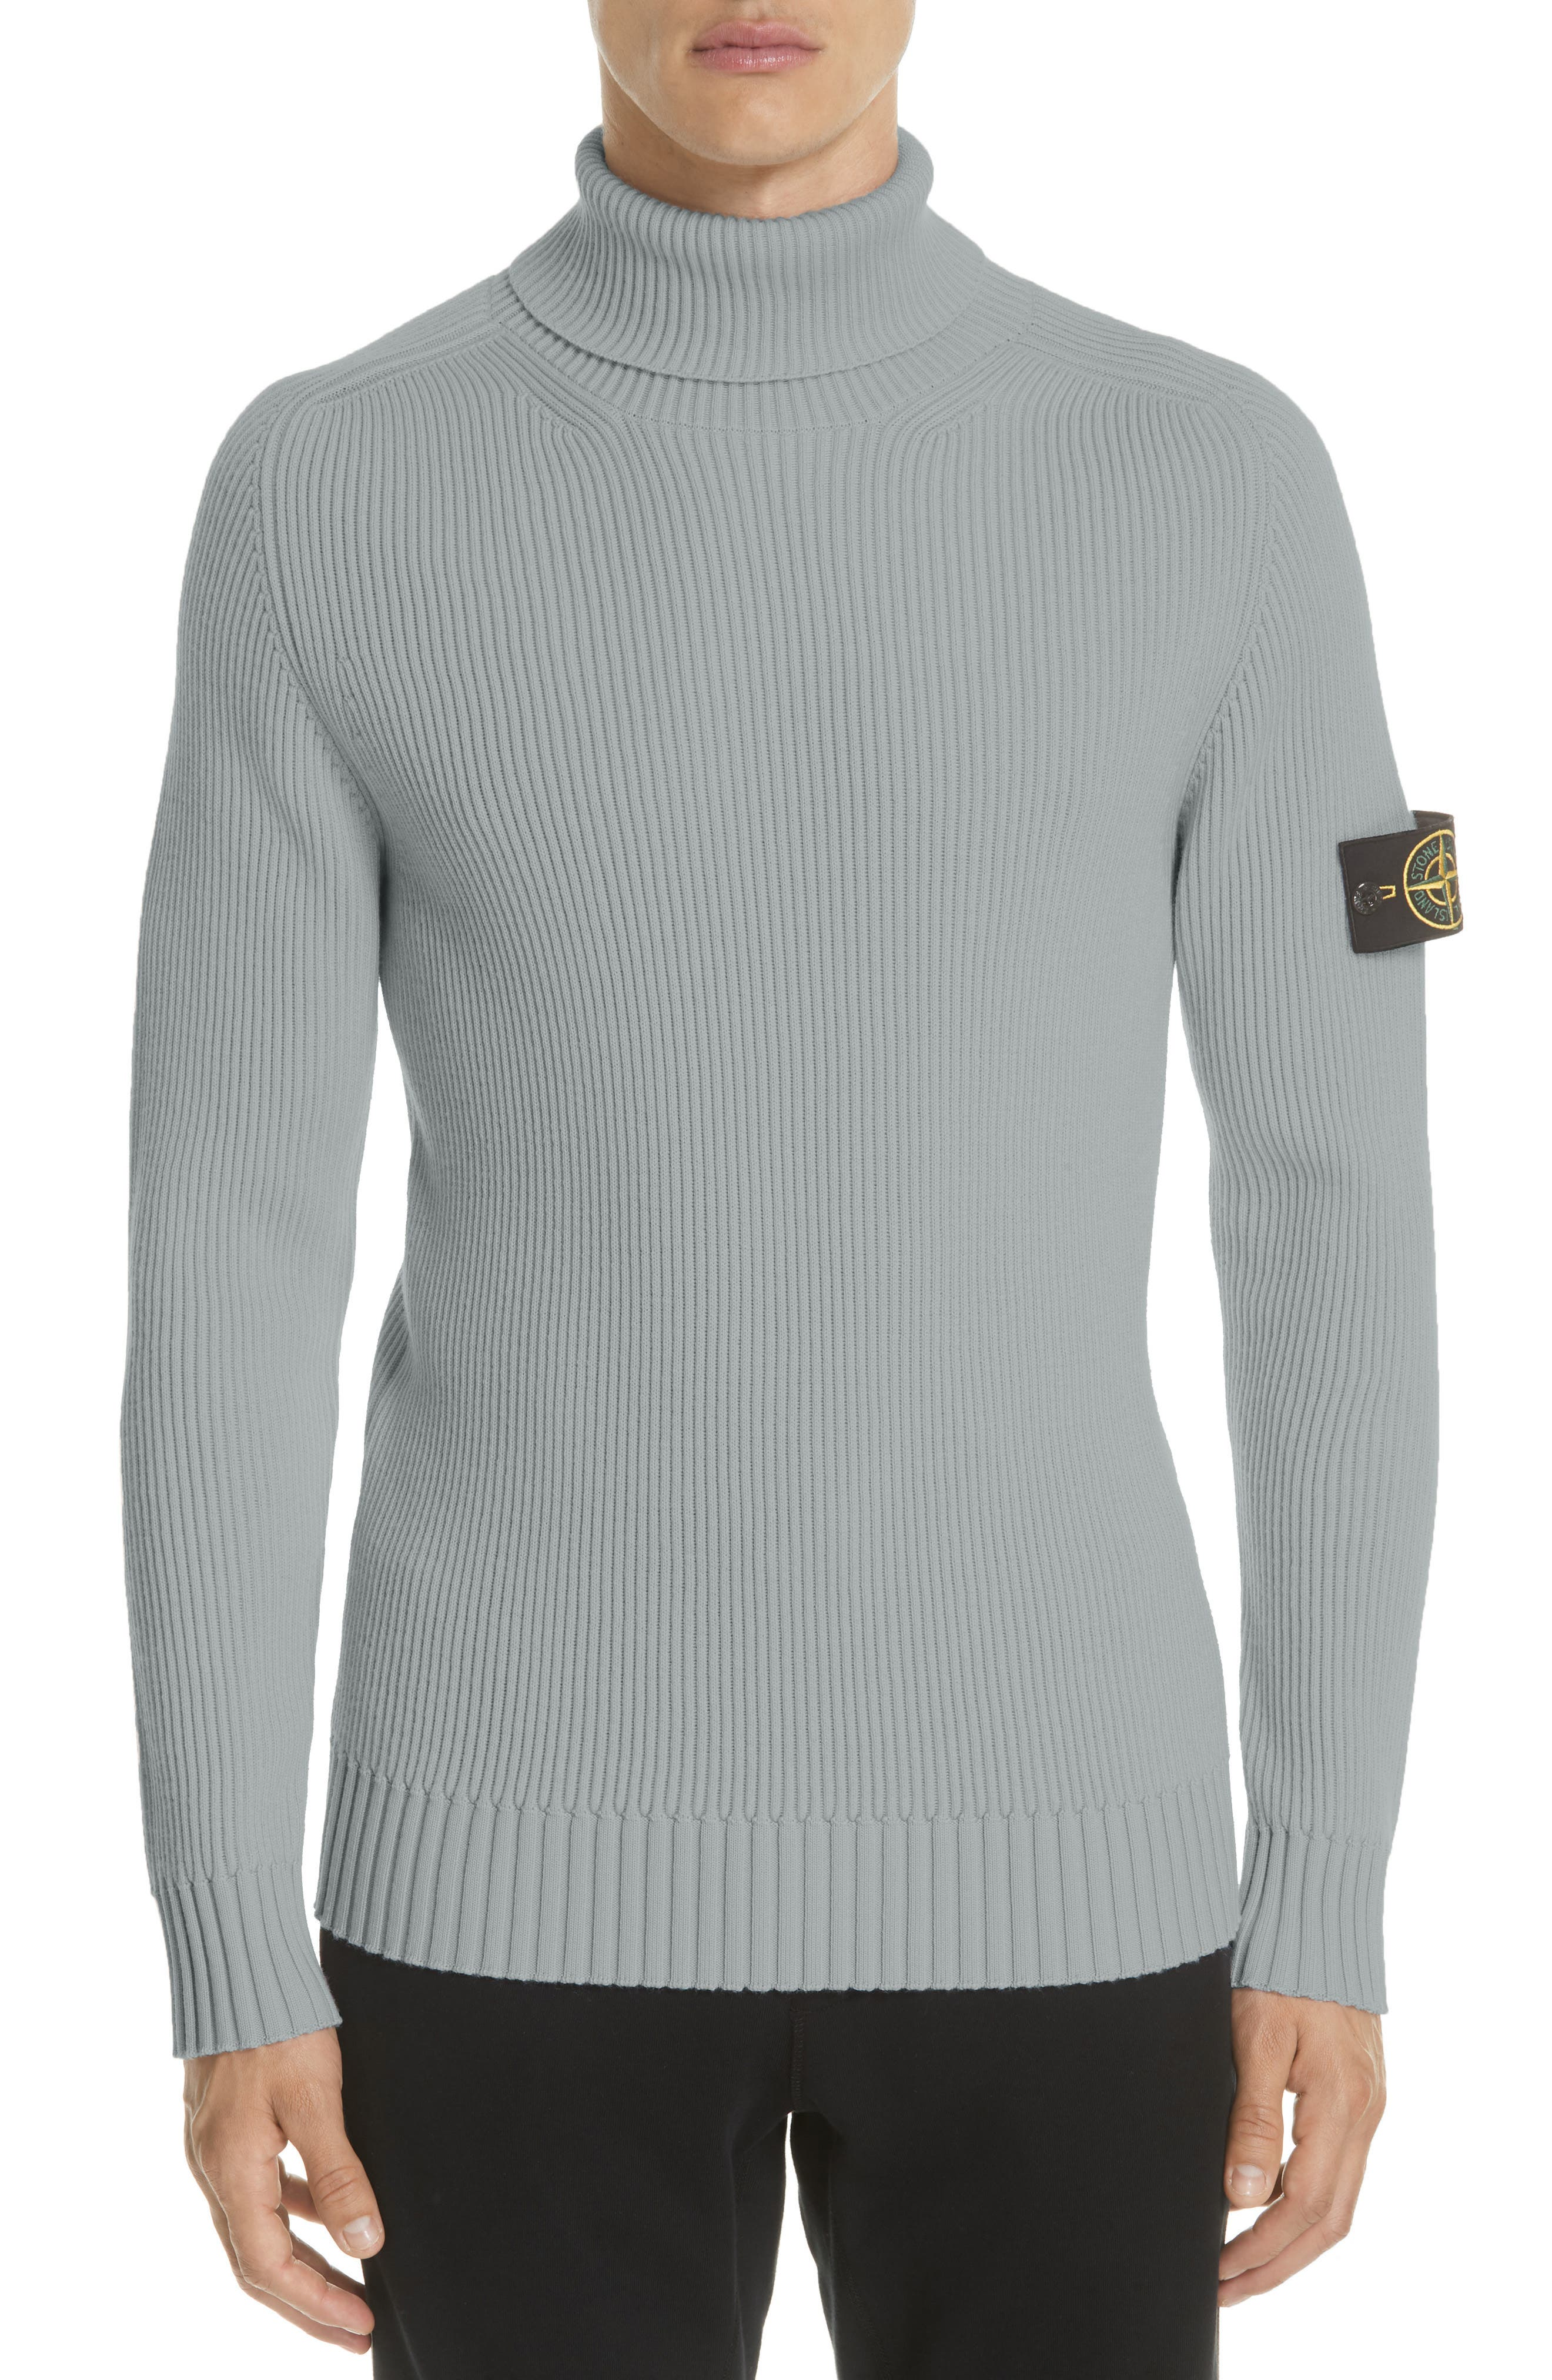 Ribbed Wool Turtleneck Sweater,                             Alternate thumbnail 4, color,                             020